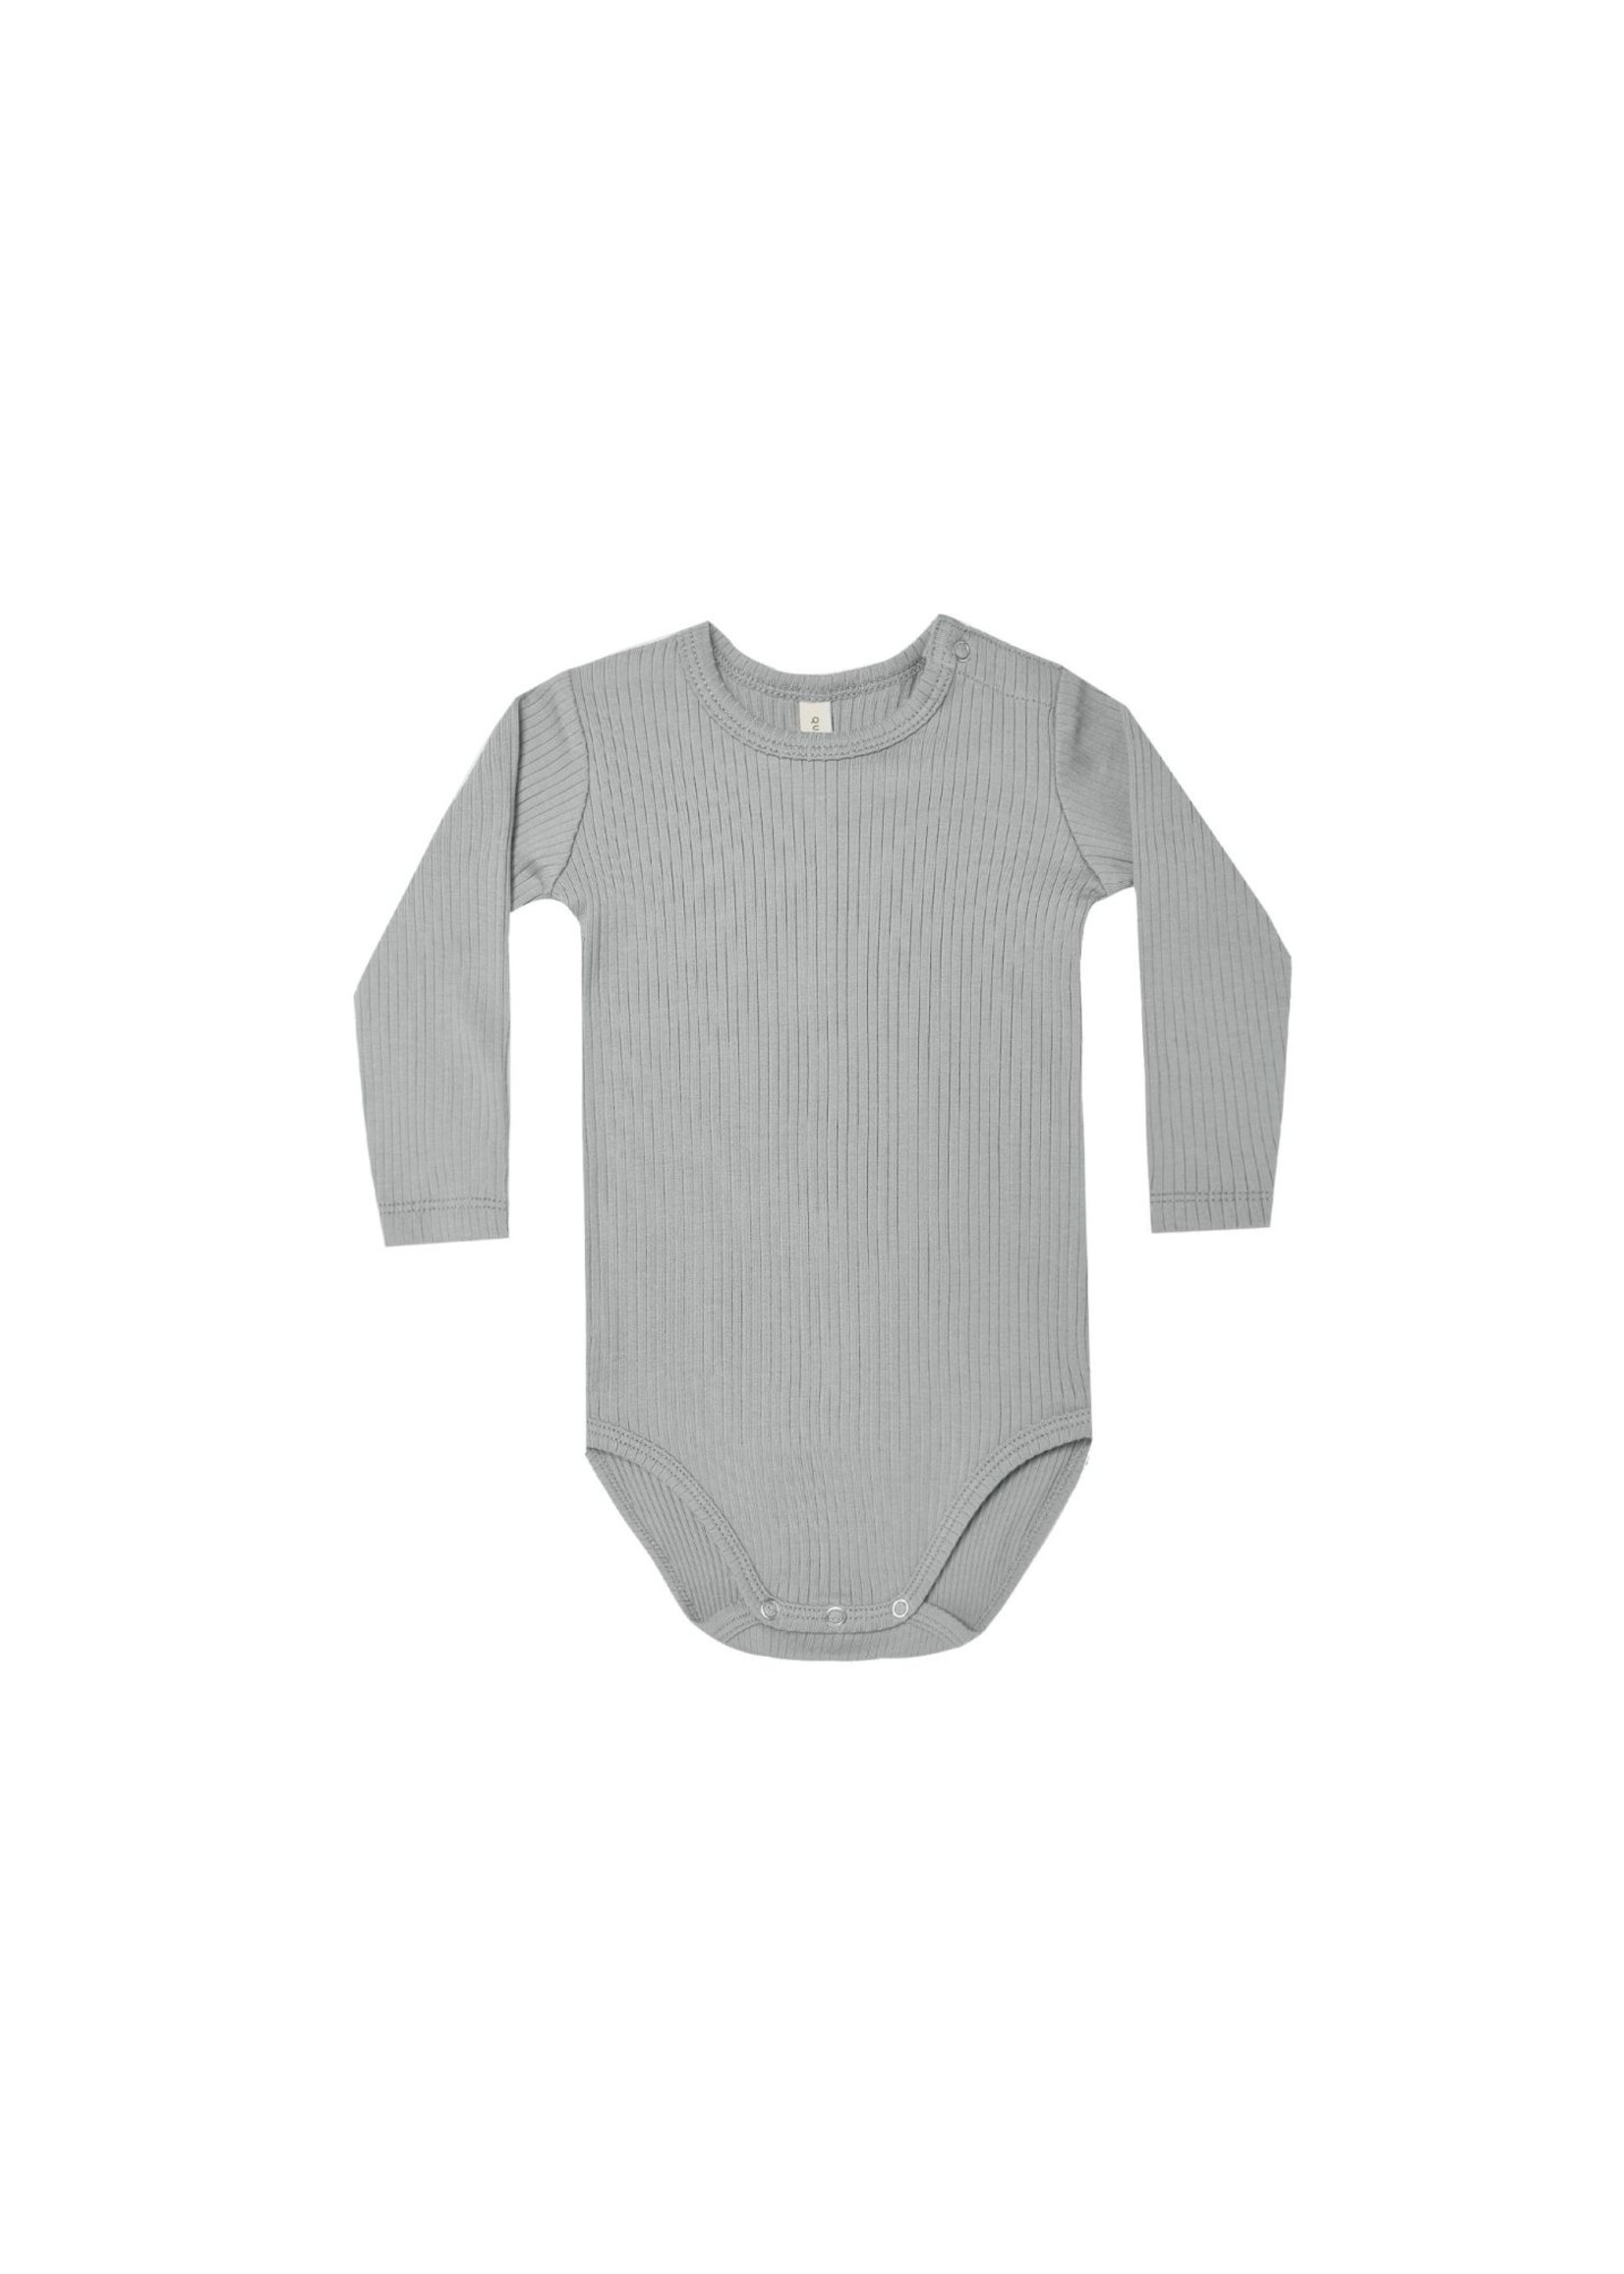 Quincy Mae Quincy Mae - Ribbed L/S Bodysuit